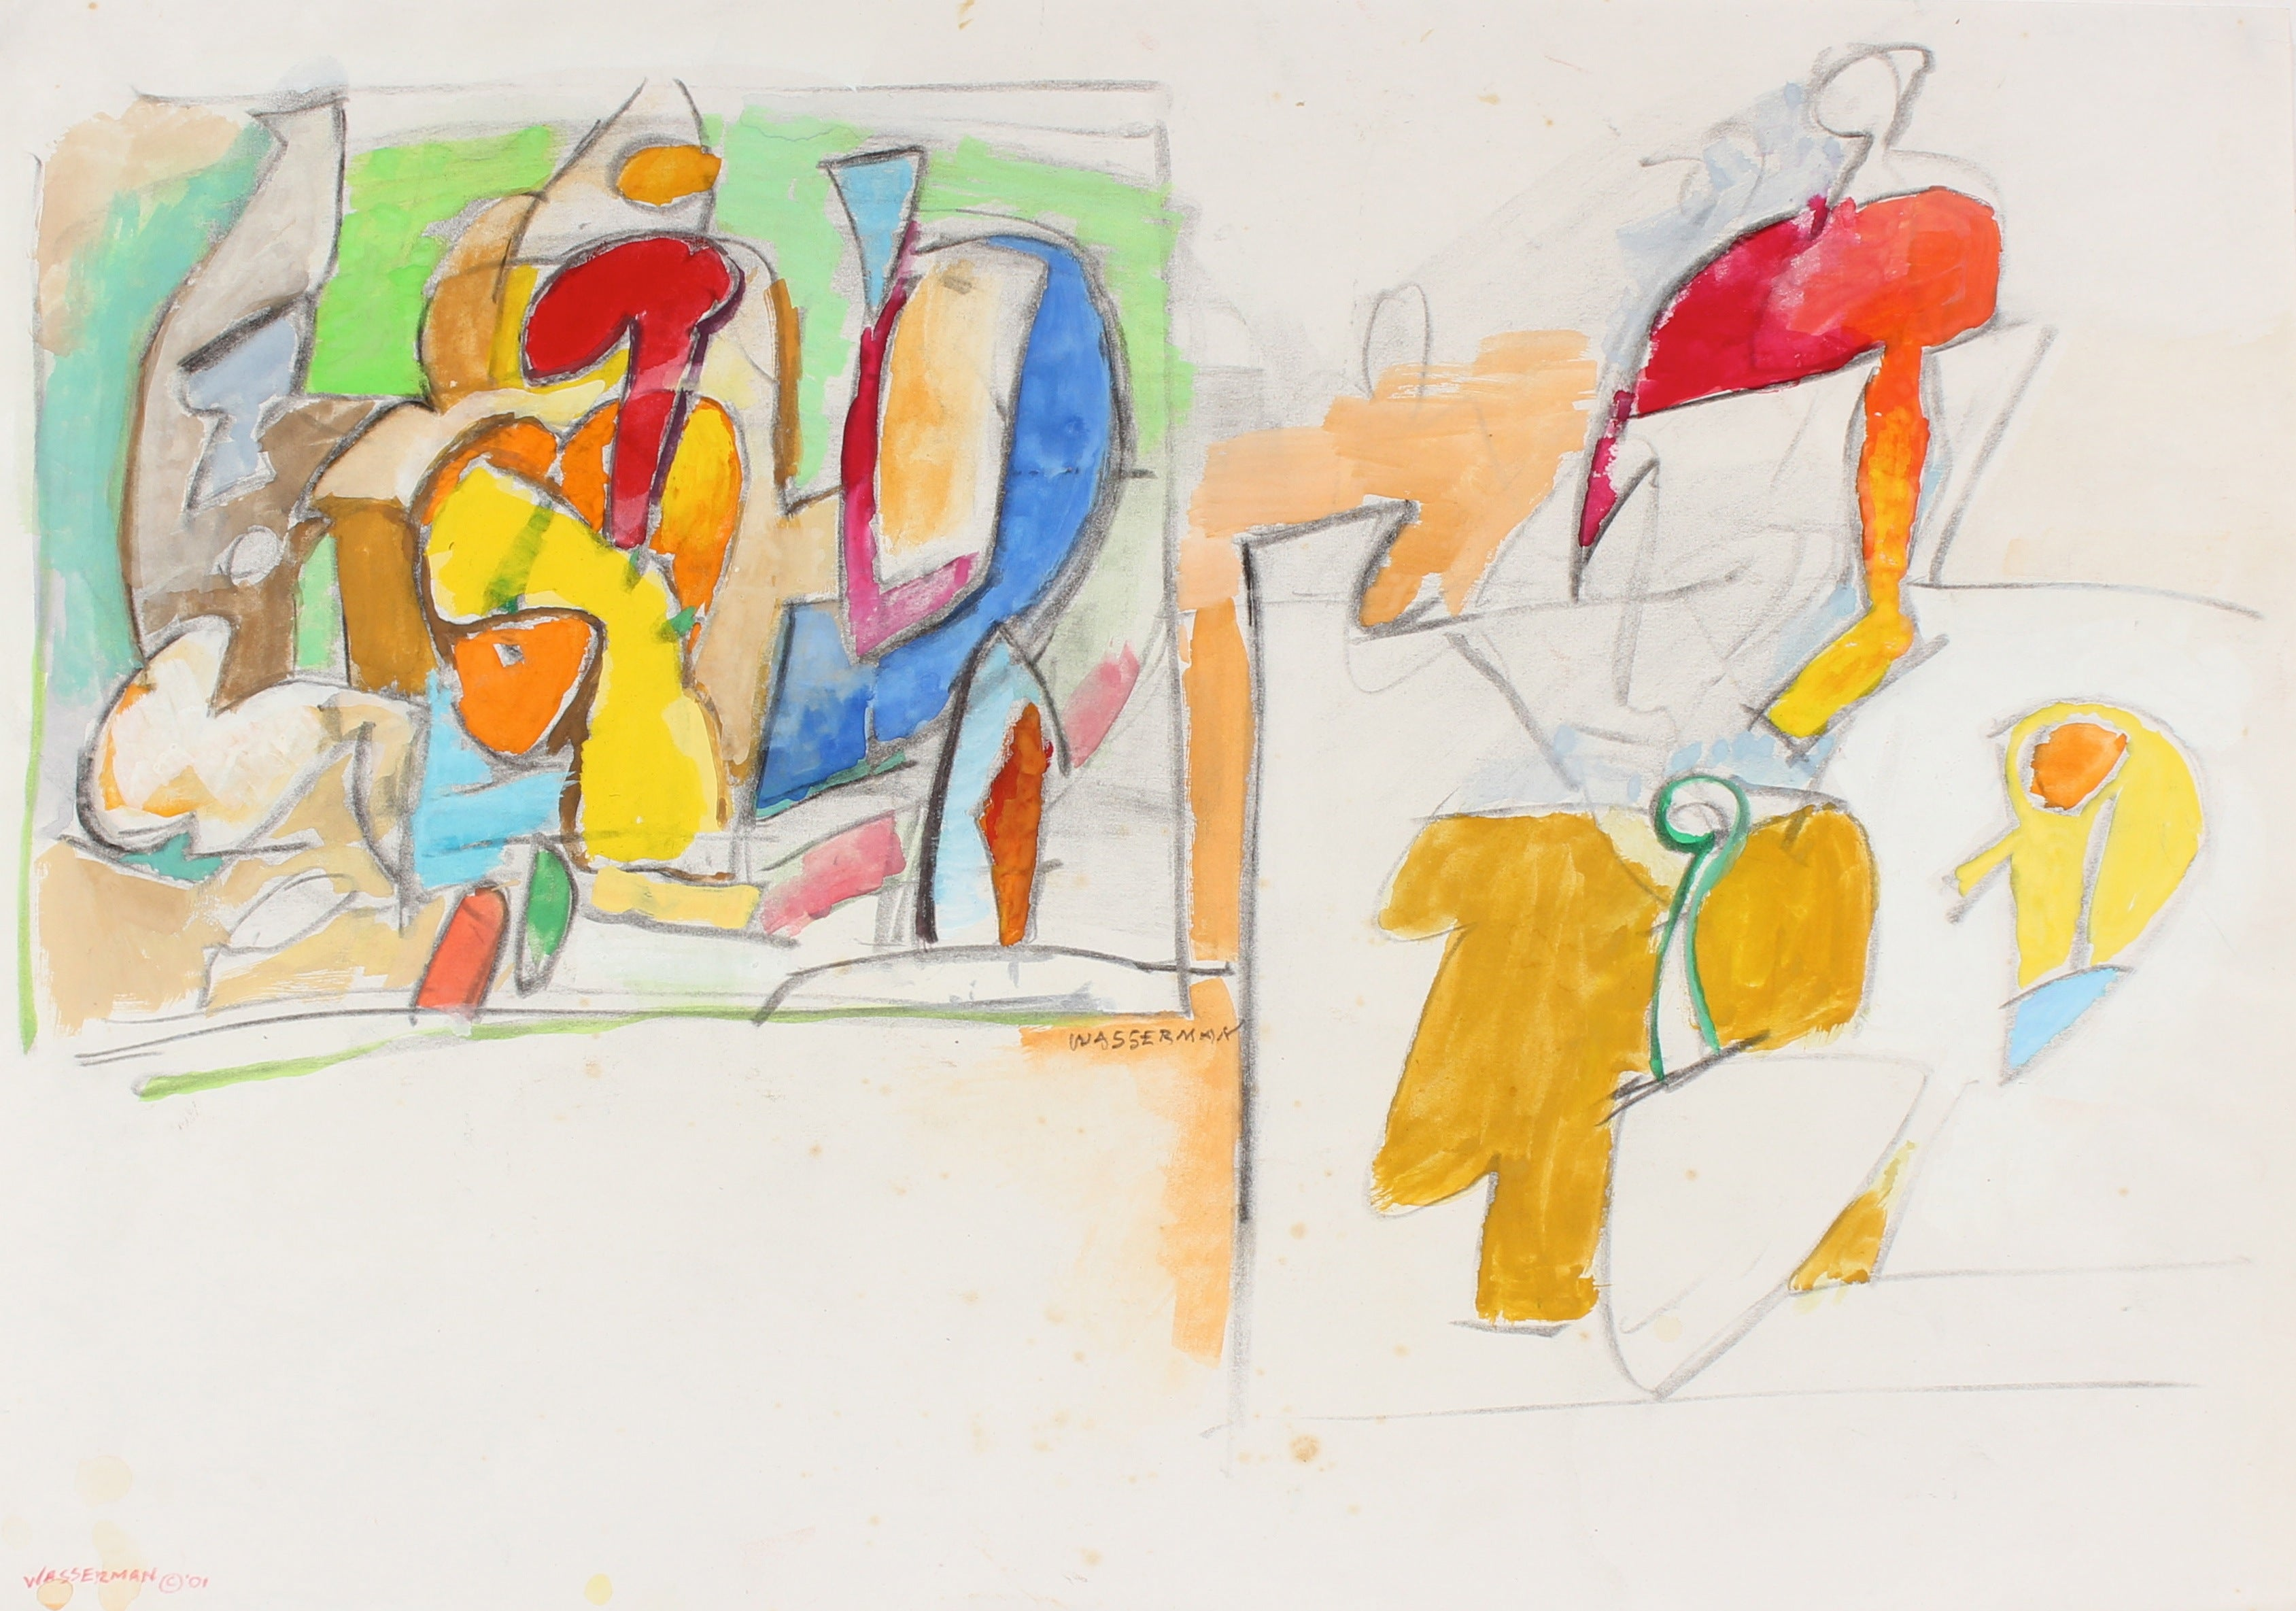 Bright Abstracted Figures in Gouache and Graphite, 20th Century